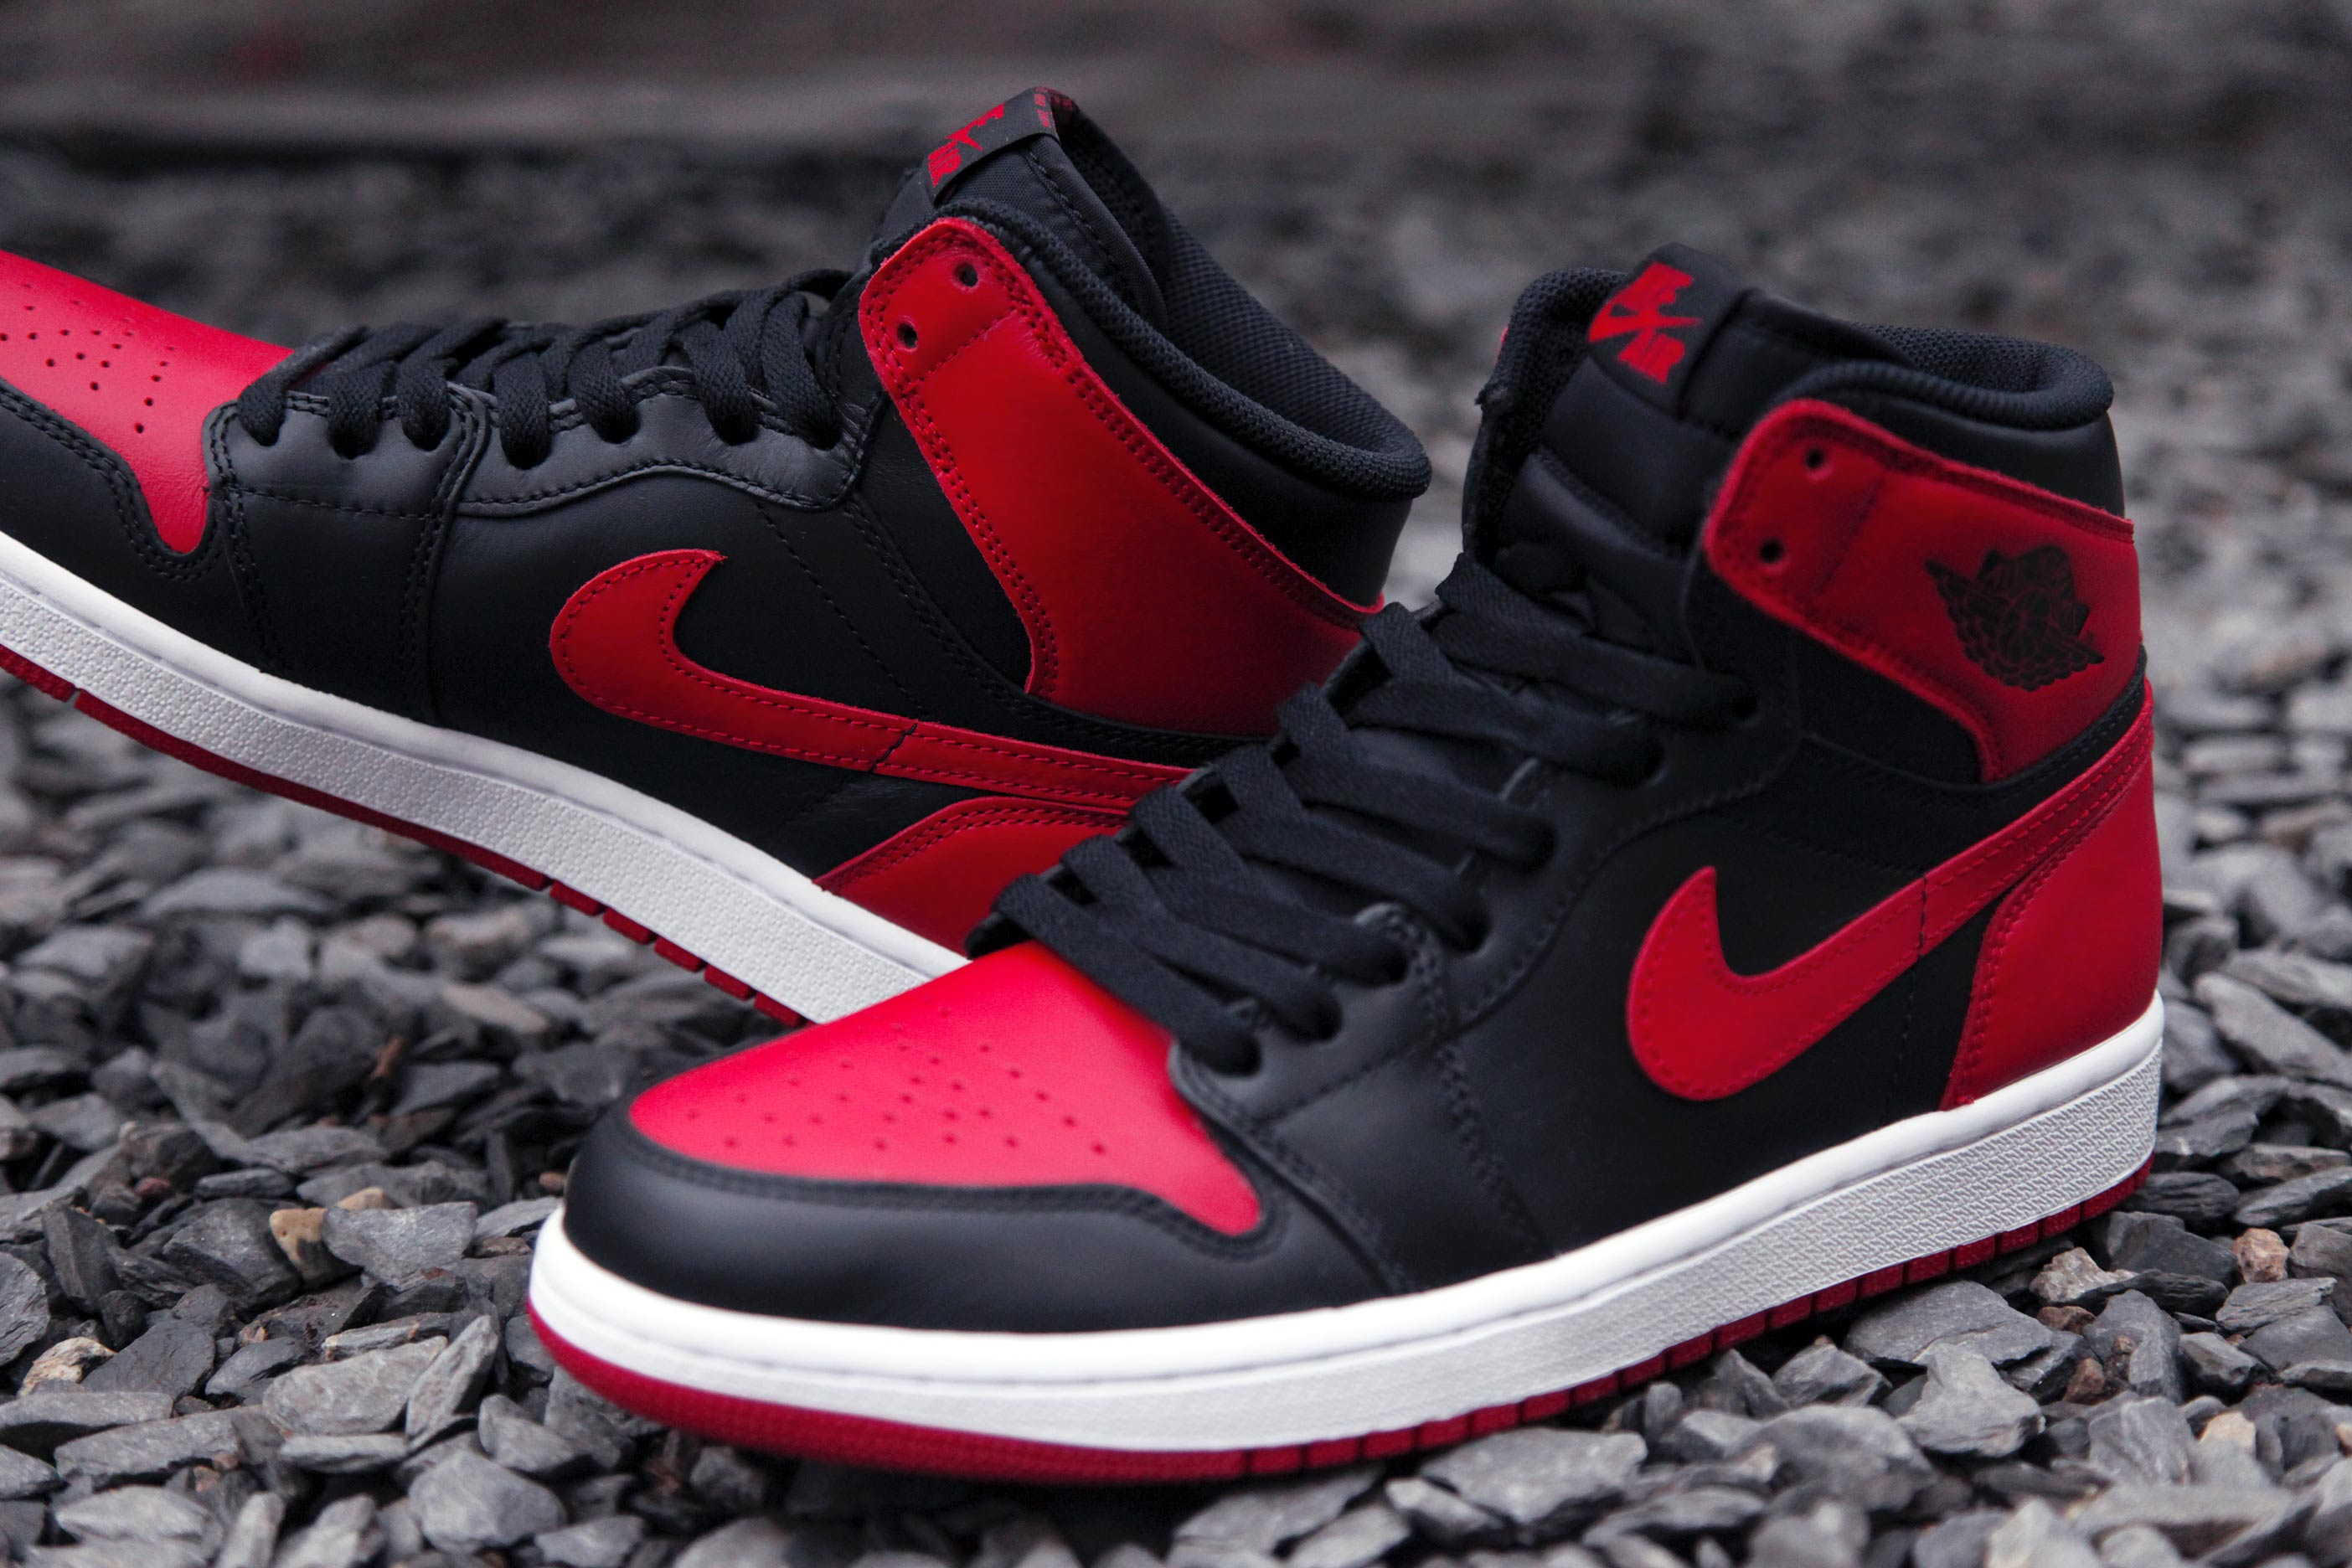 【復刻】Air Jordan 1 High OG Bred【2016年秋頃】 | sneaker bucks